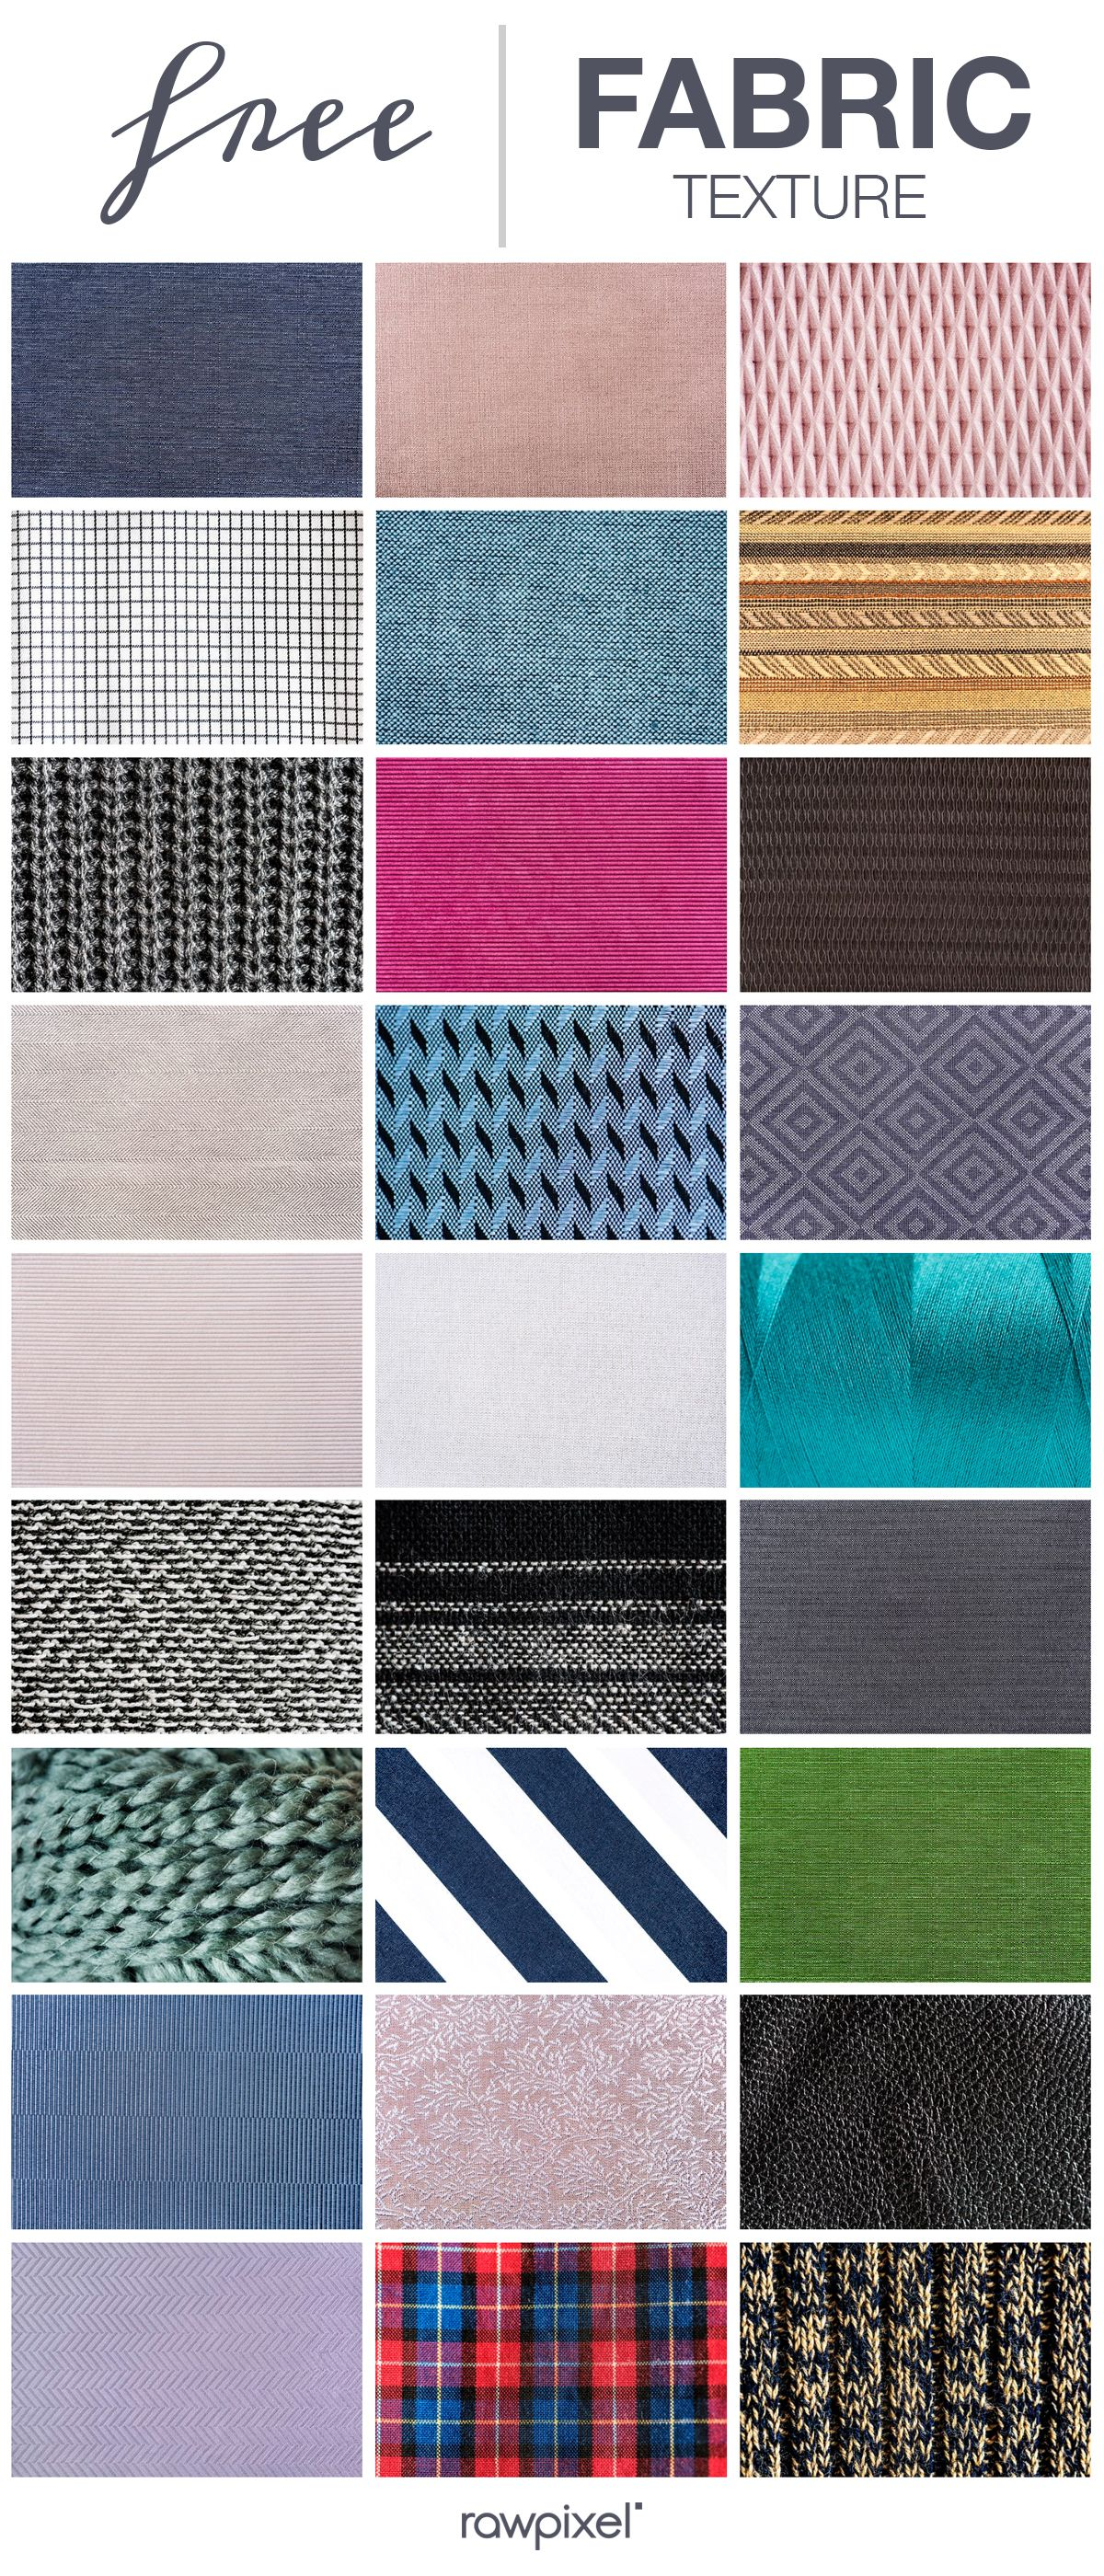 Download Free Royalty Free Images Of Fabric Texture Design At Rawpixel Com Free Design Resources Texture Design Simple Texture Background